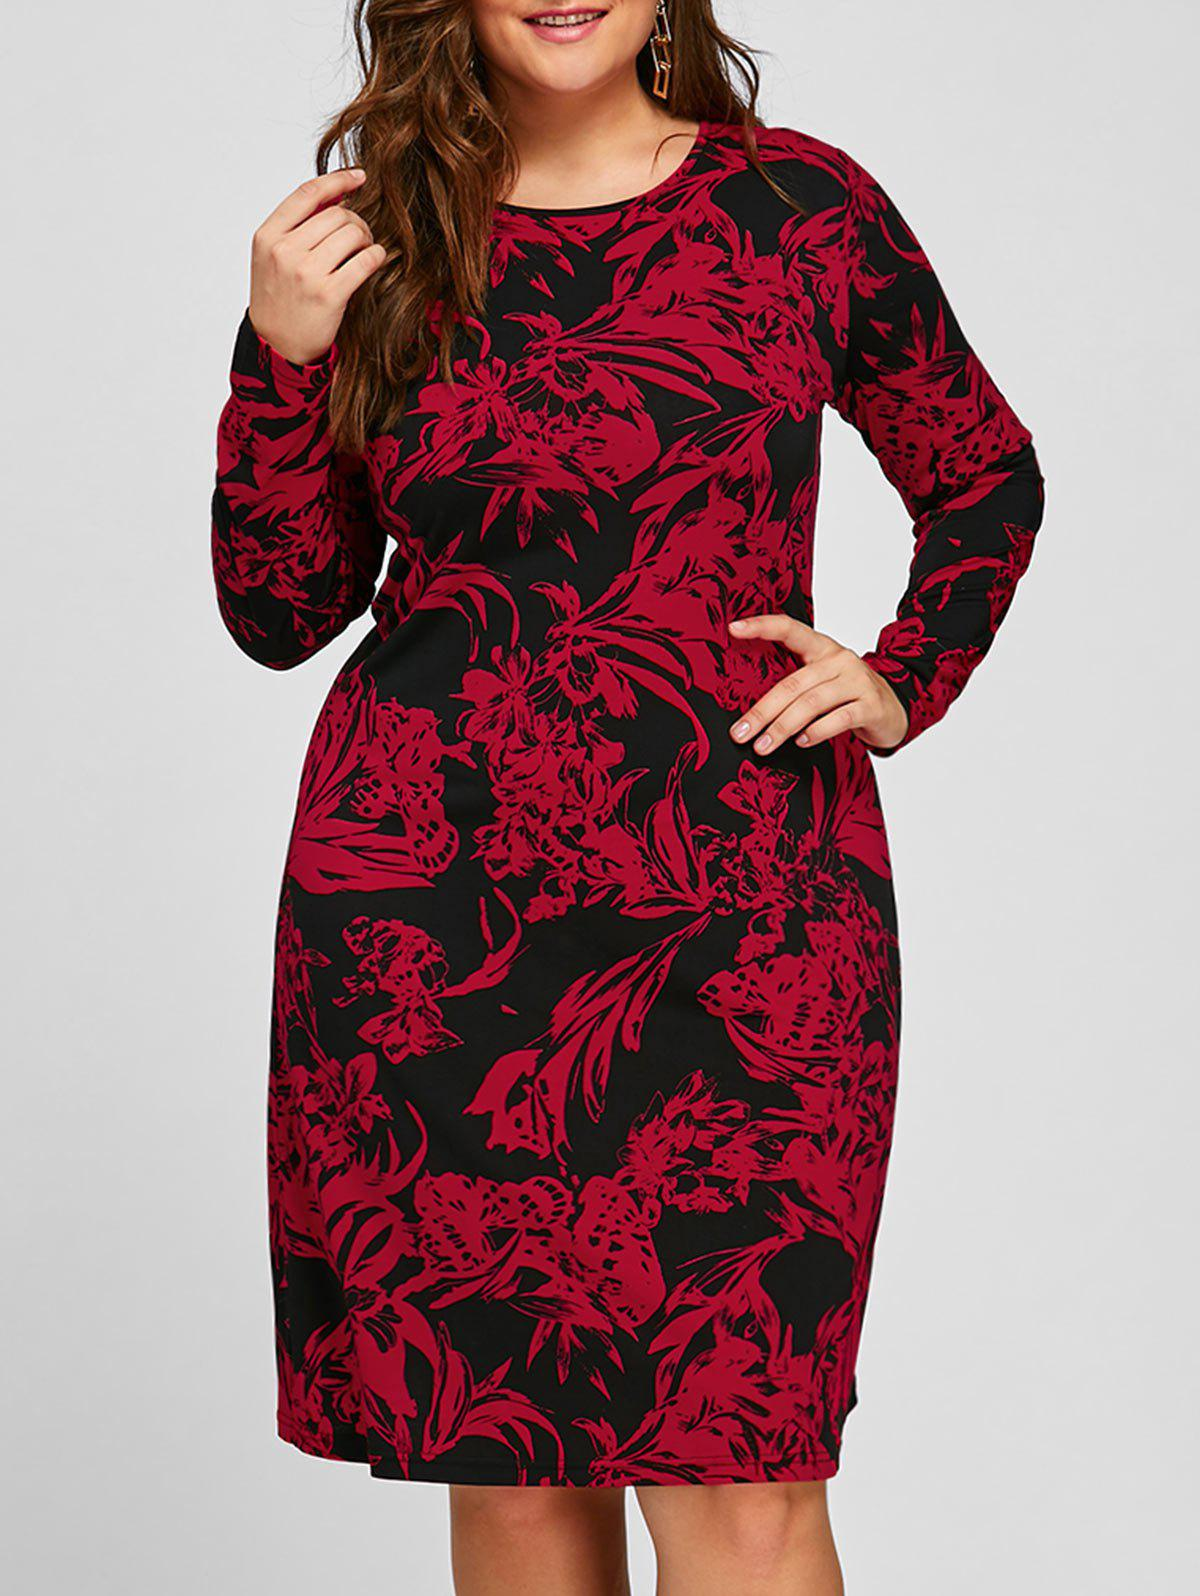 Floral Plus Size Long Sleeve Sheath DressWOMEN<br><br>Size: 2XL; Color: RED; Style: Cute; Material: Polyester,Spandex; Silhouette: Sheath; Dresses Length: Knee-Length; Neckline: Round Collar; Sleeve Length: Long Sleeves; Pattern Type: Floral; With Belt: No; Season: Fall,Spring; Weight: 0.3200kg; Package Contents: 1 x Dress;